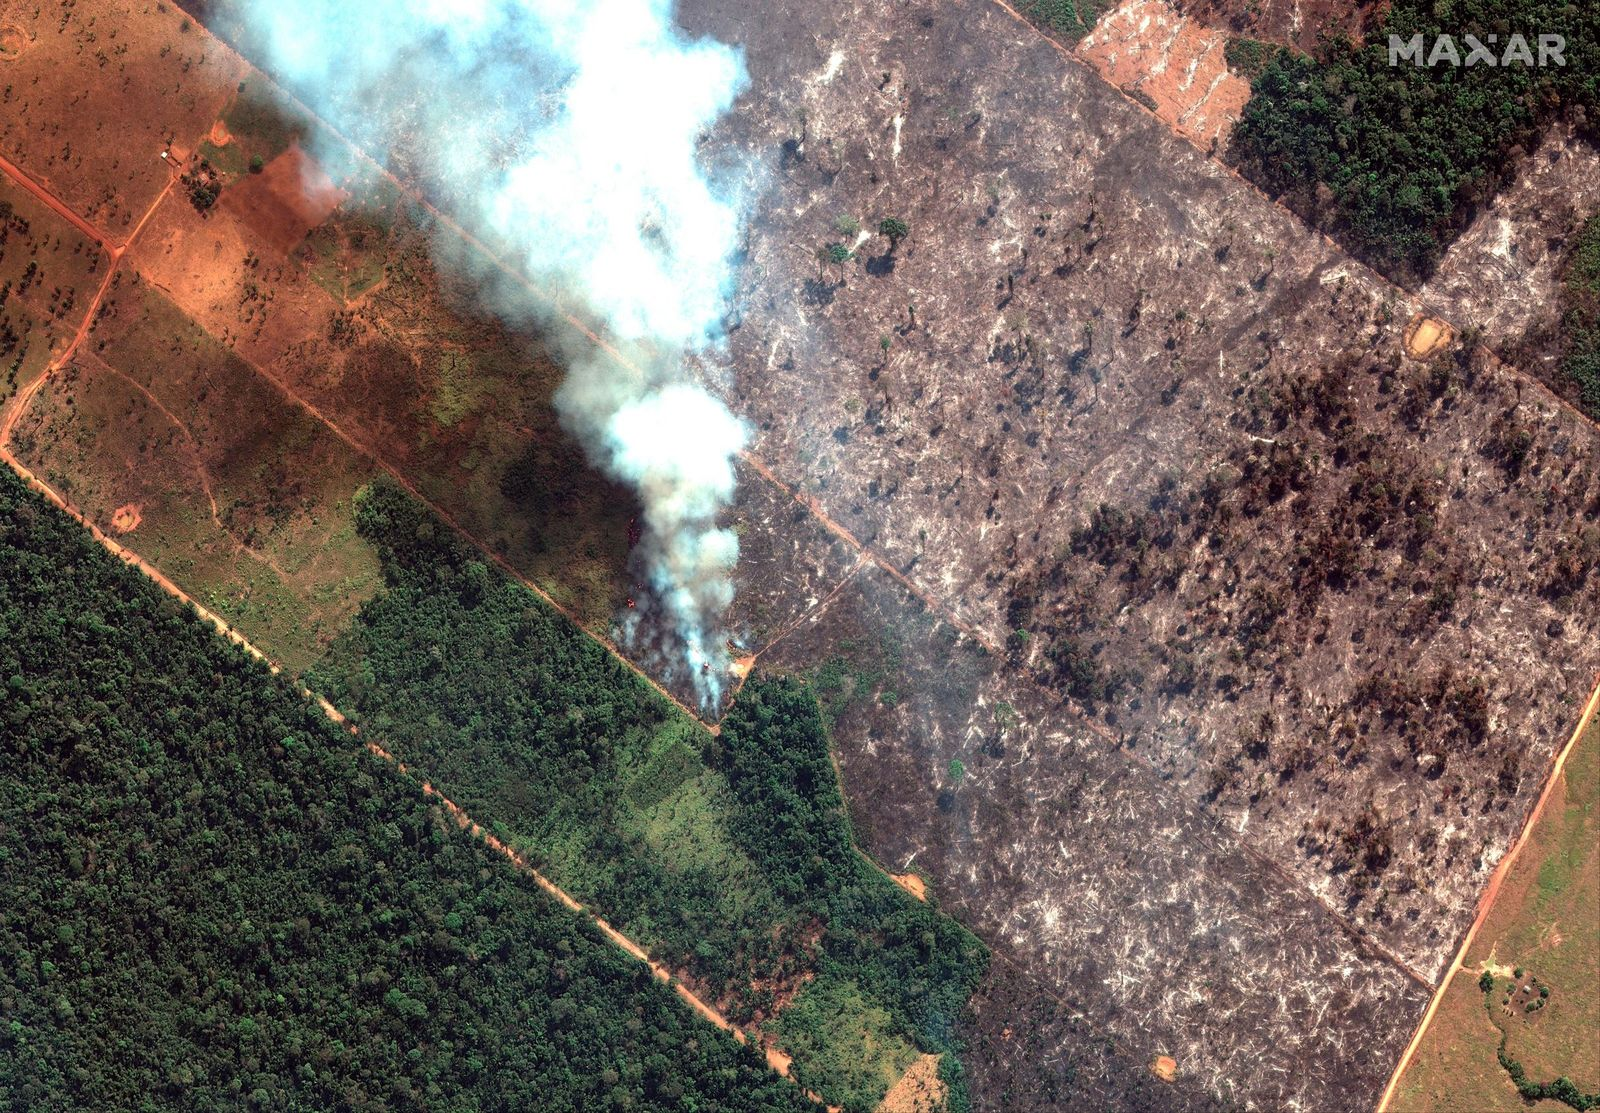 This Aug. 15, 2019 satellite image from Maxar Technologies shows closeup view of a fire southwest of Porto Velho Brazil. (Satellite image ©2019 Maxar Technologies via AP)